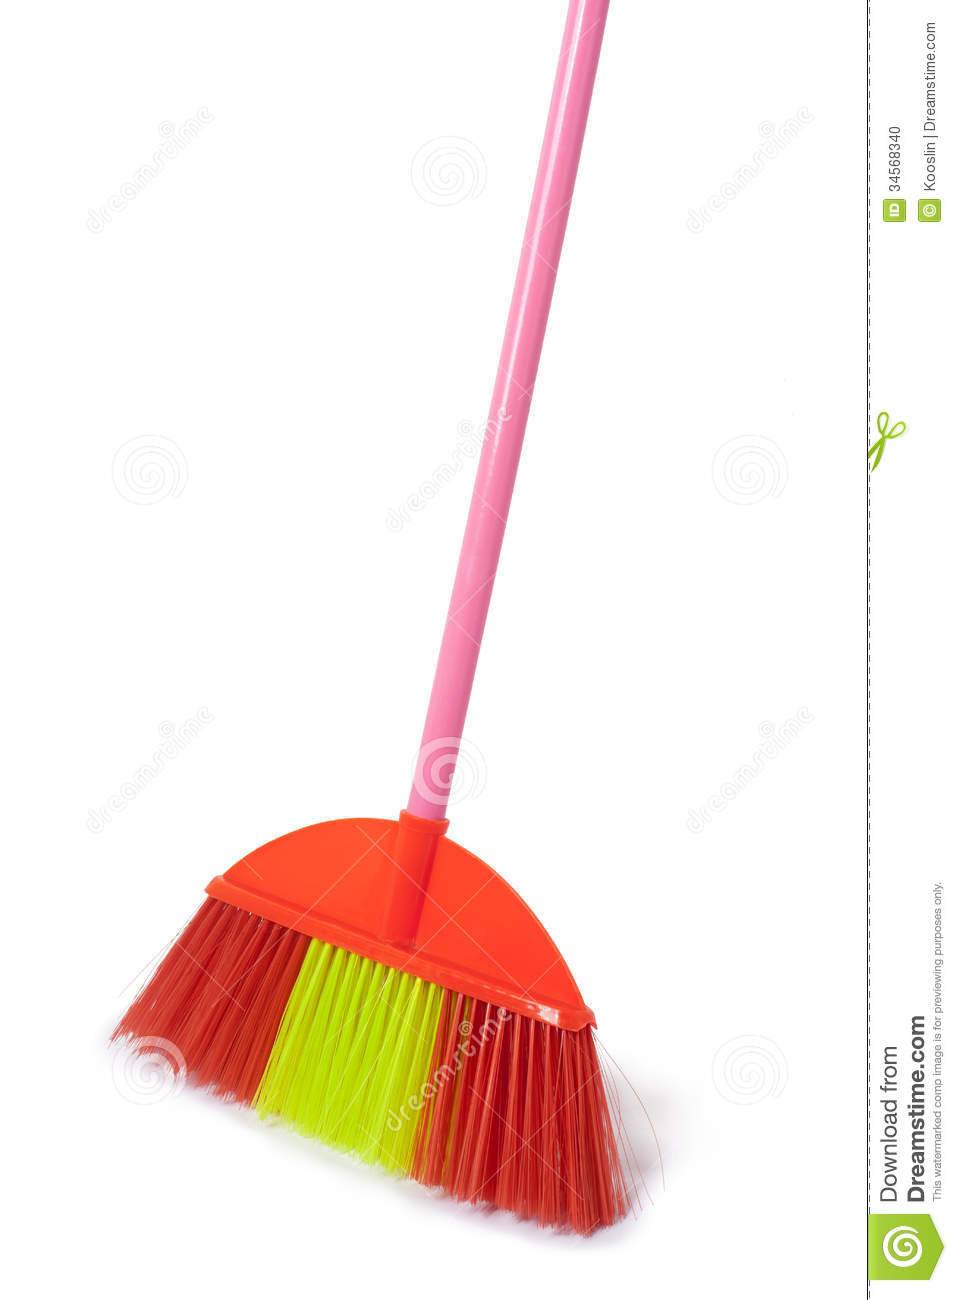 Red plastic broom isolated on white.